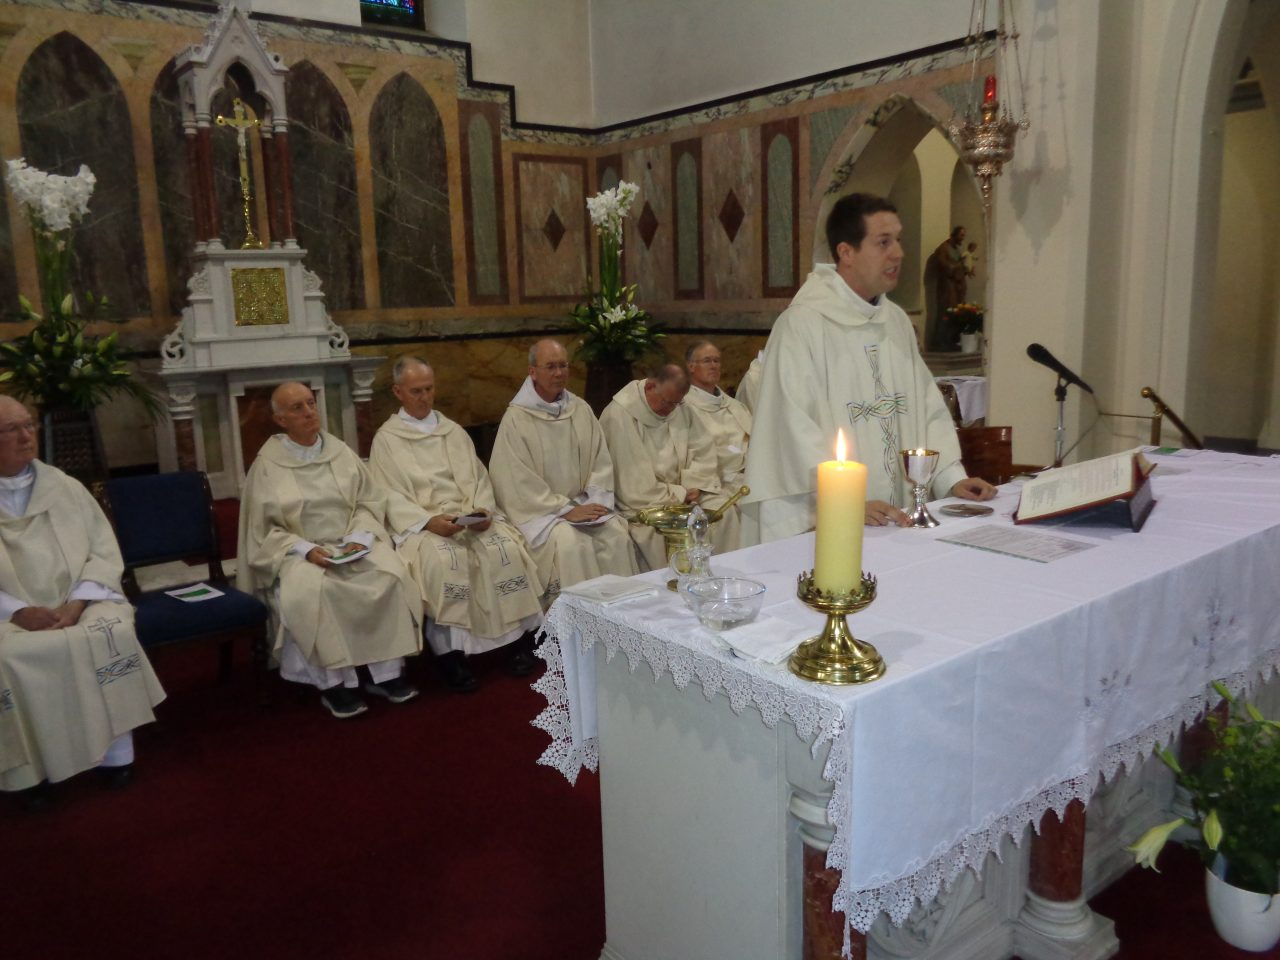 Fr. Tom Celebrates his First Mass